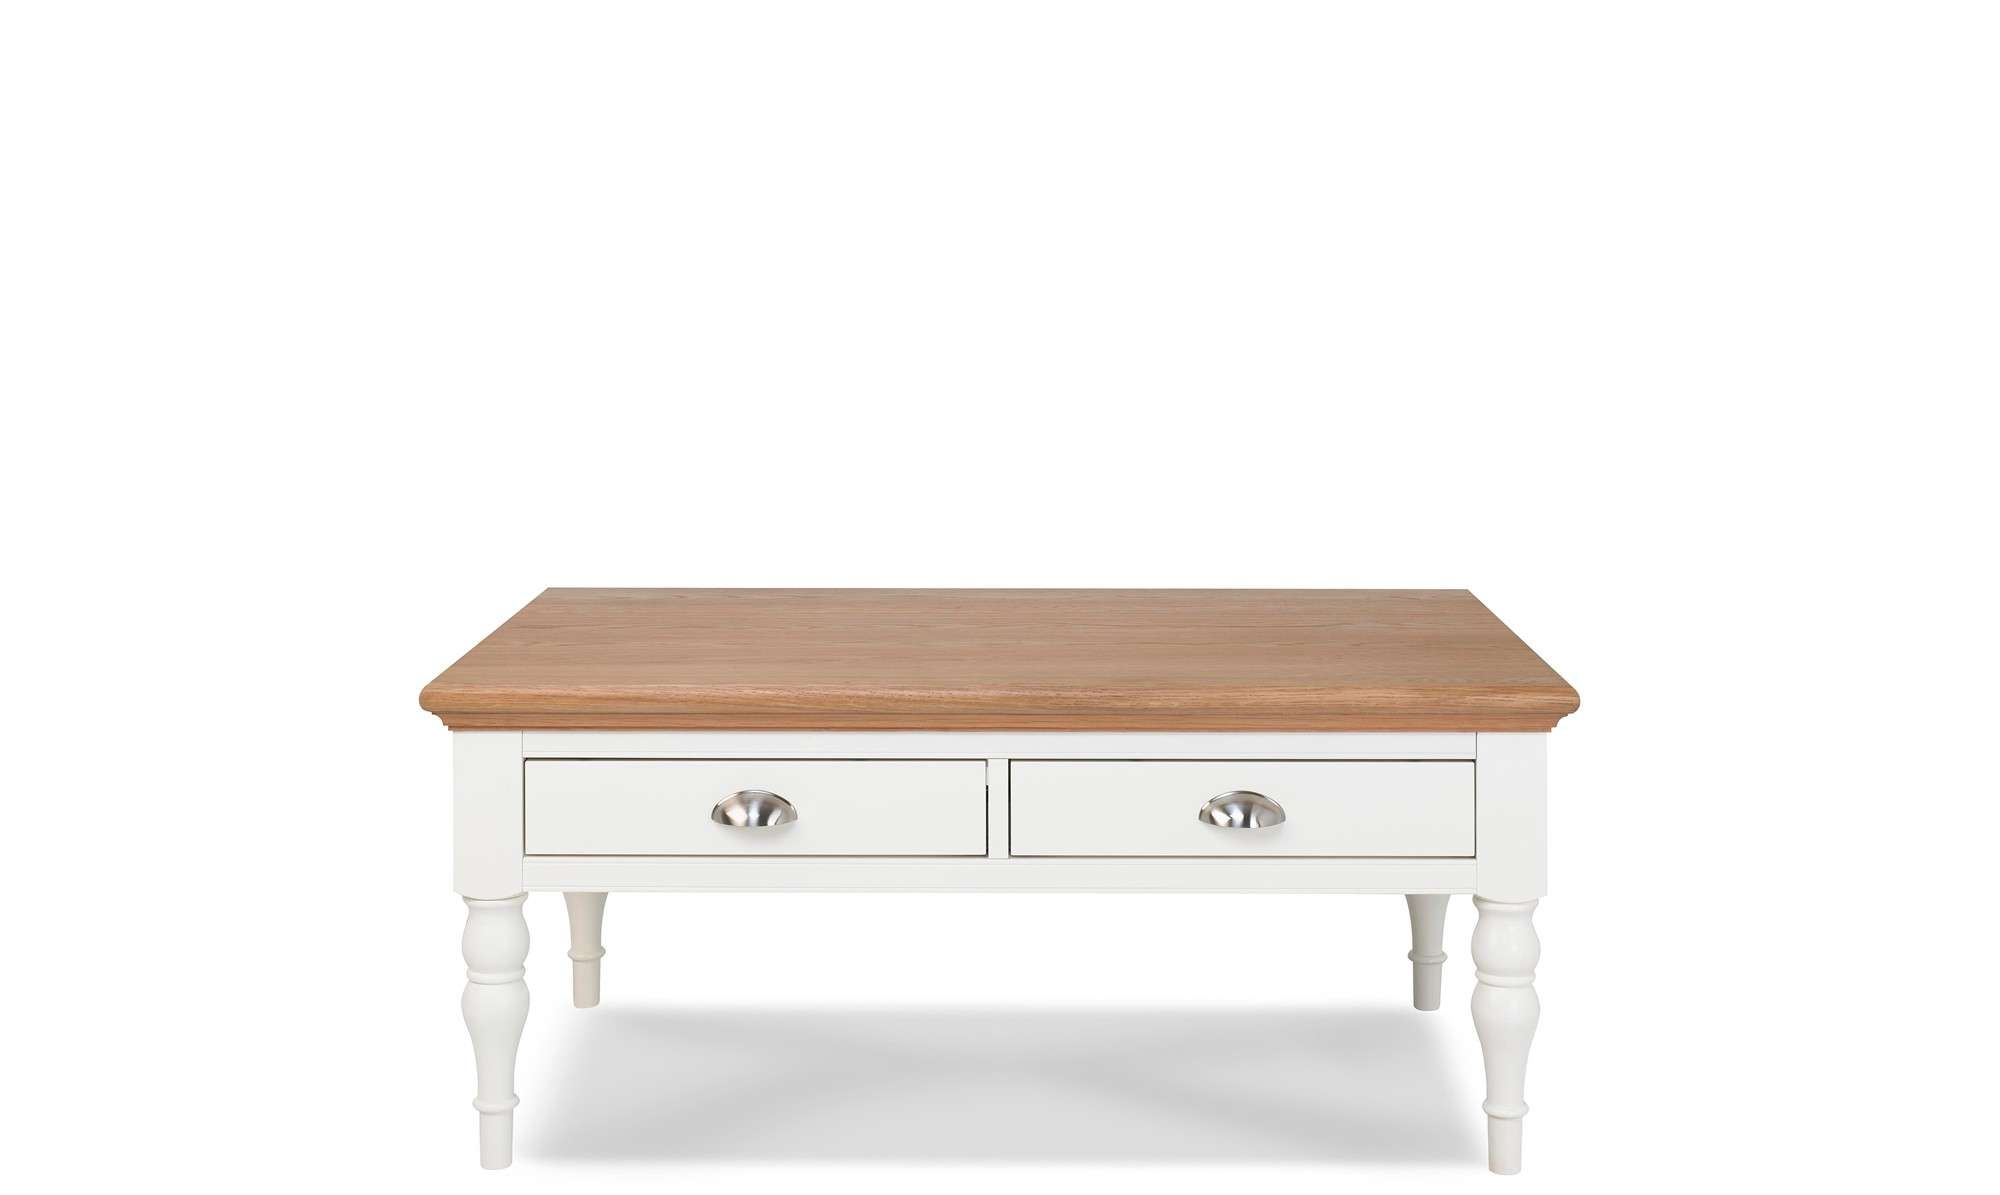 Fashionable Cream Coffee Tables With Drawers In Coffee Tables – Wooden And Glass Coffee Tables – Fishpools (View 2 of 20)